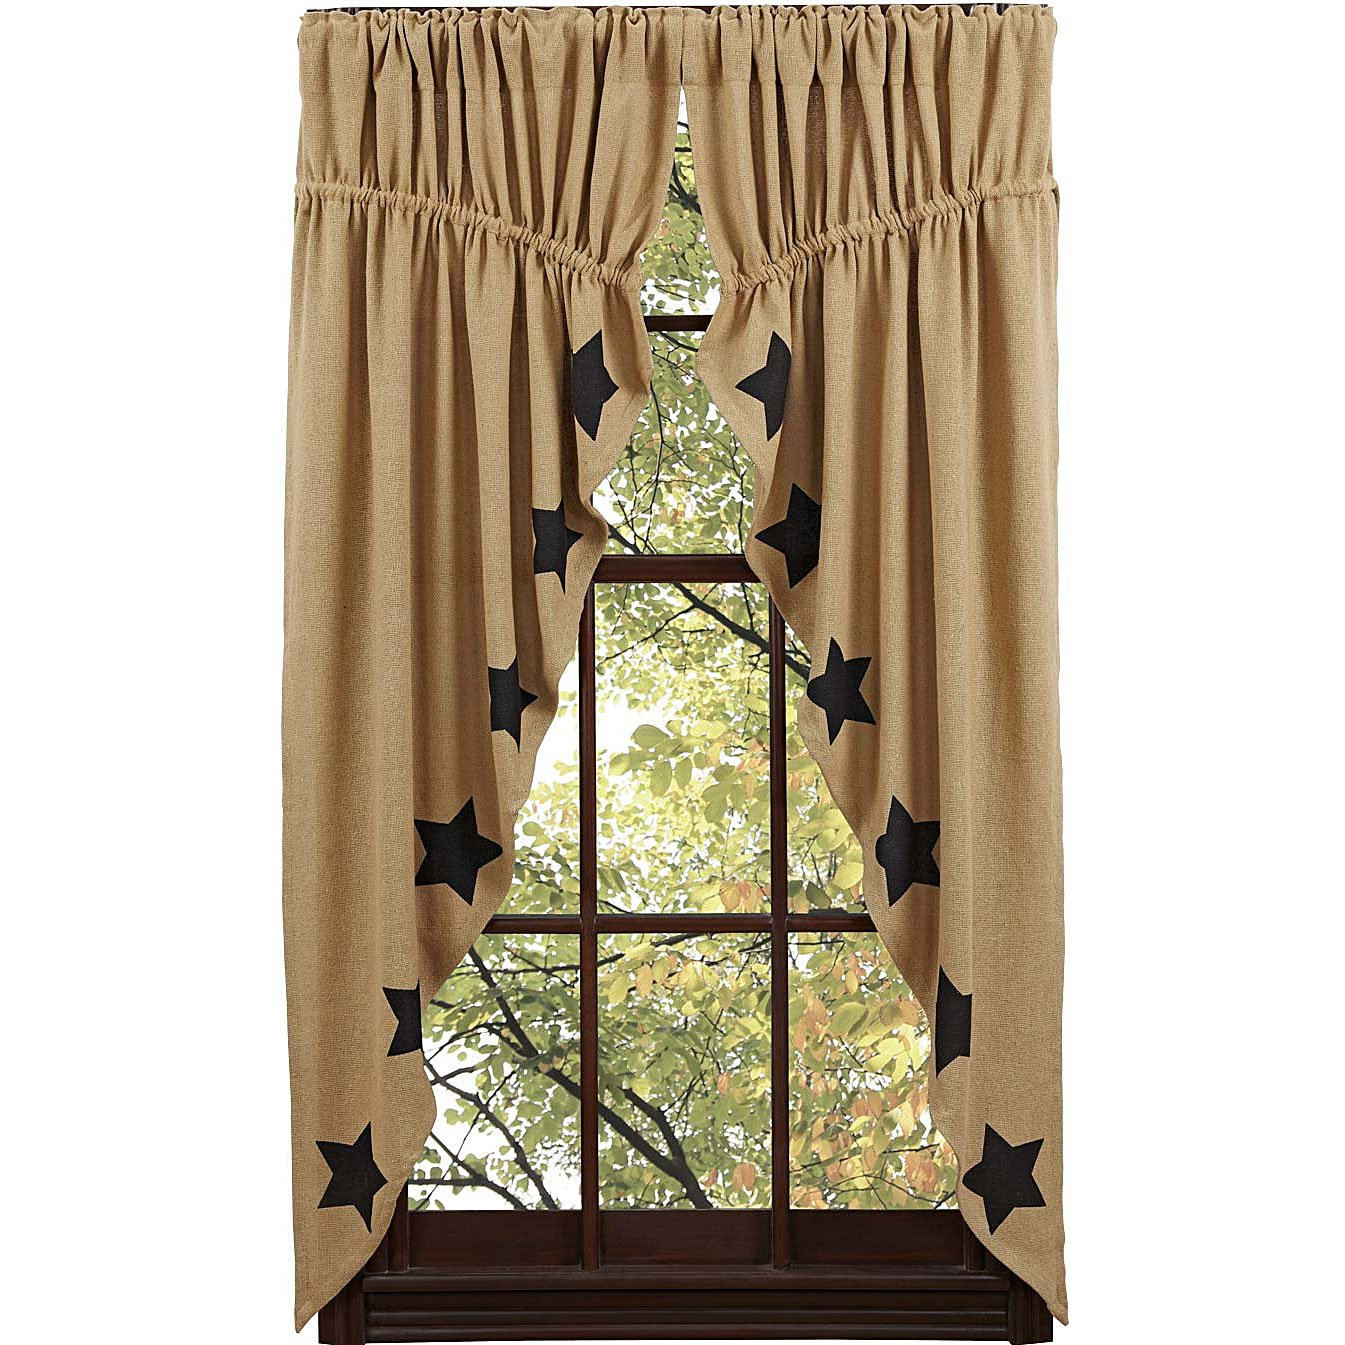 Burlap Natural Prairie Curtain Black Stencil Stars Set of 2